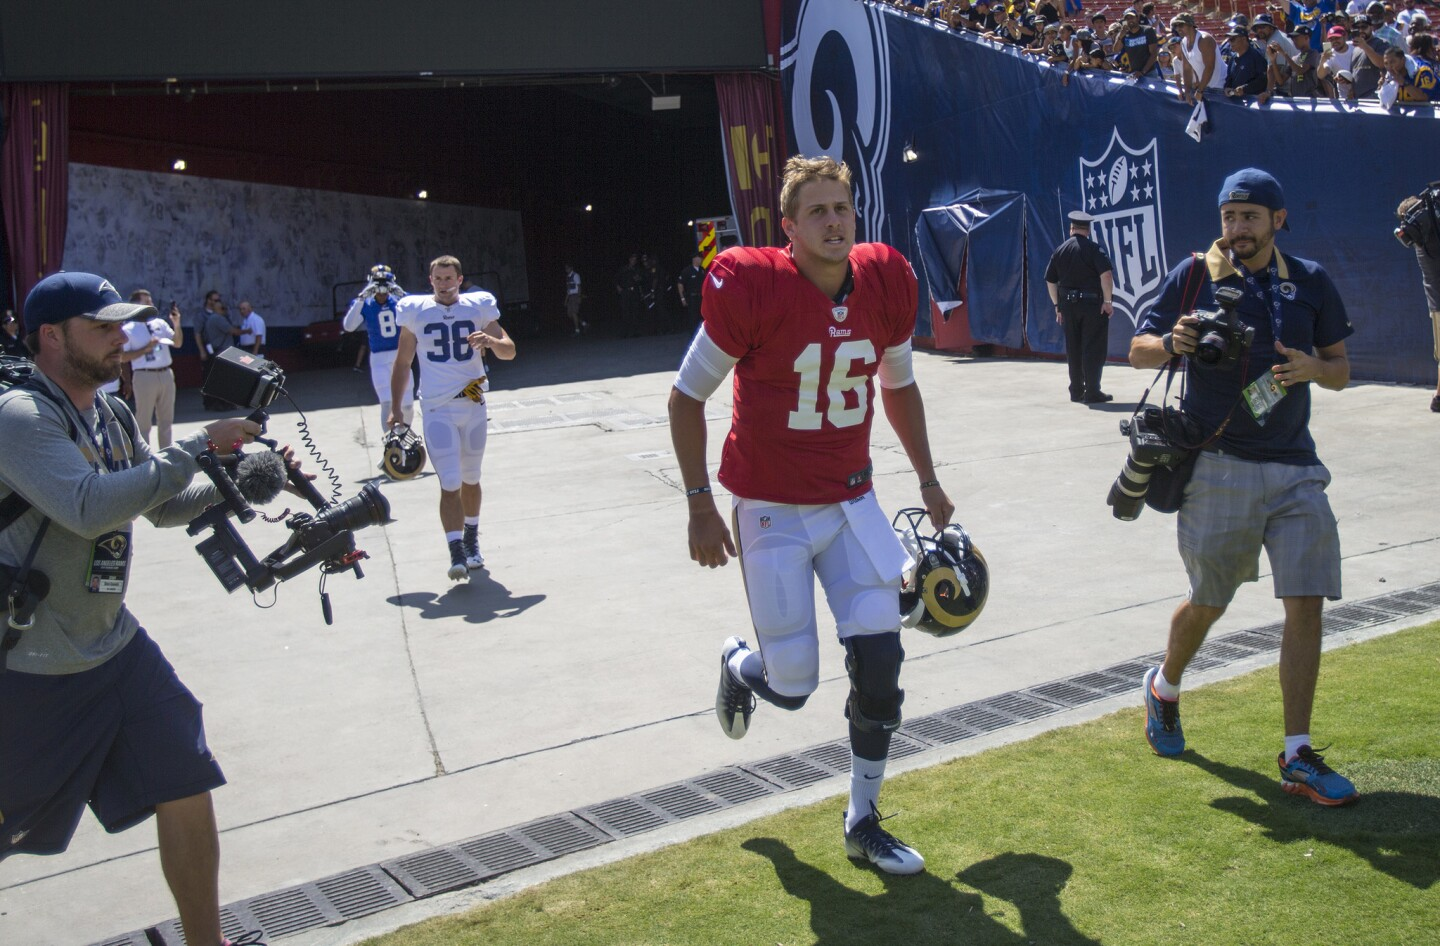 LOS ANGELES, CA - AUGUST 6, 2016: Rams rookie quarterback Jared Goff (#16) enters the L.A. Coliseum of the first time as a Ram before a team scrimmage on August 6, 2016 in Los Angeles, California.(Gina Ferazzi / Los Angeles Times)